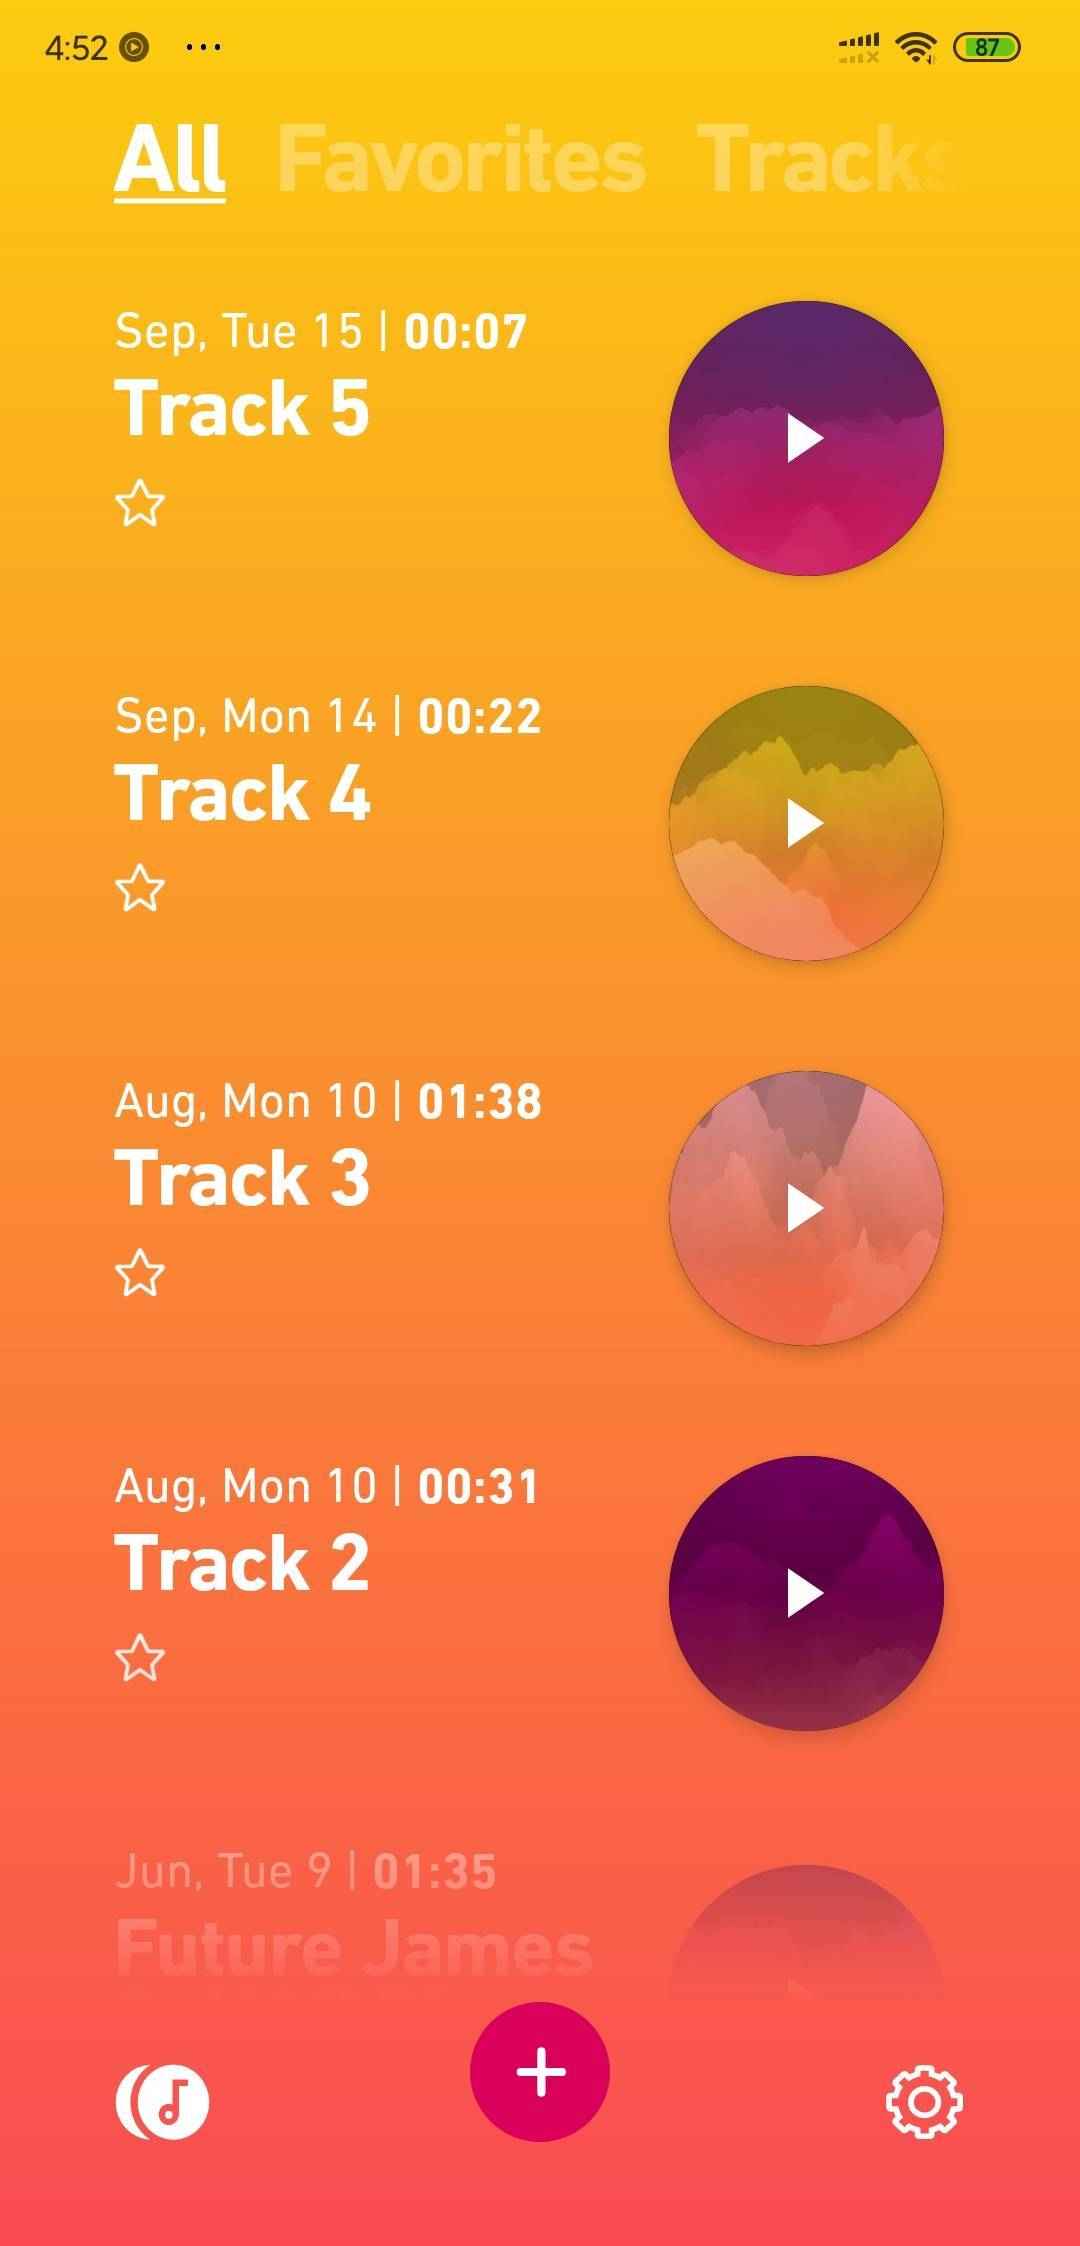 track list in dolby on Remove Background Noise From Video in Android